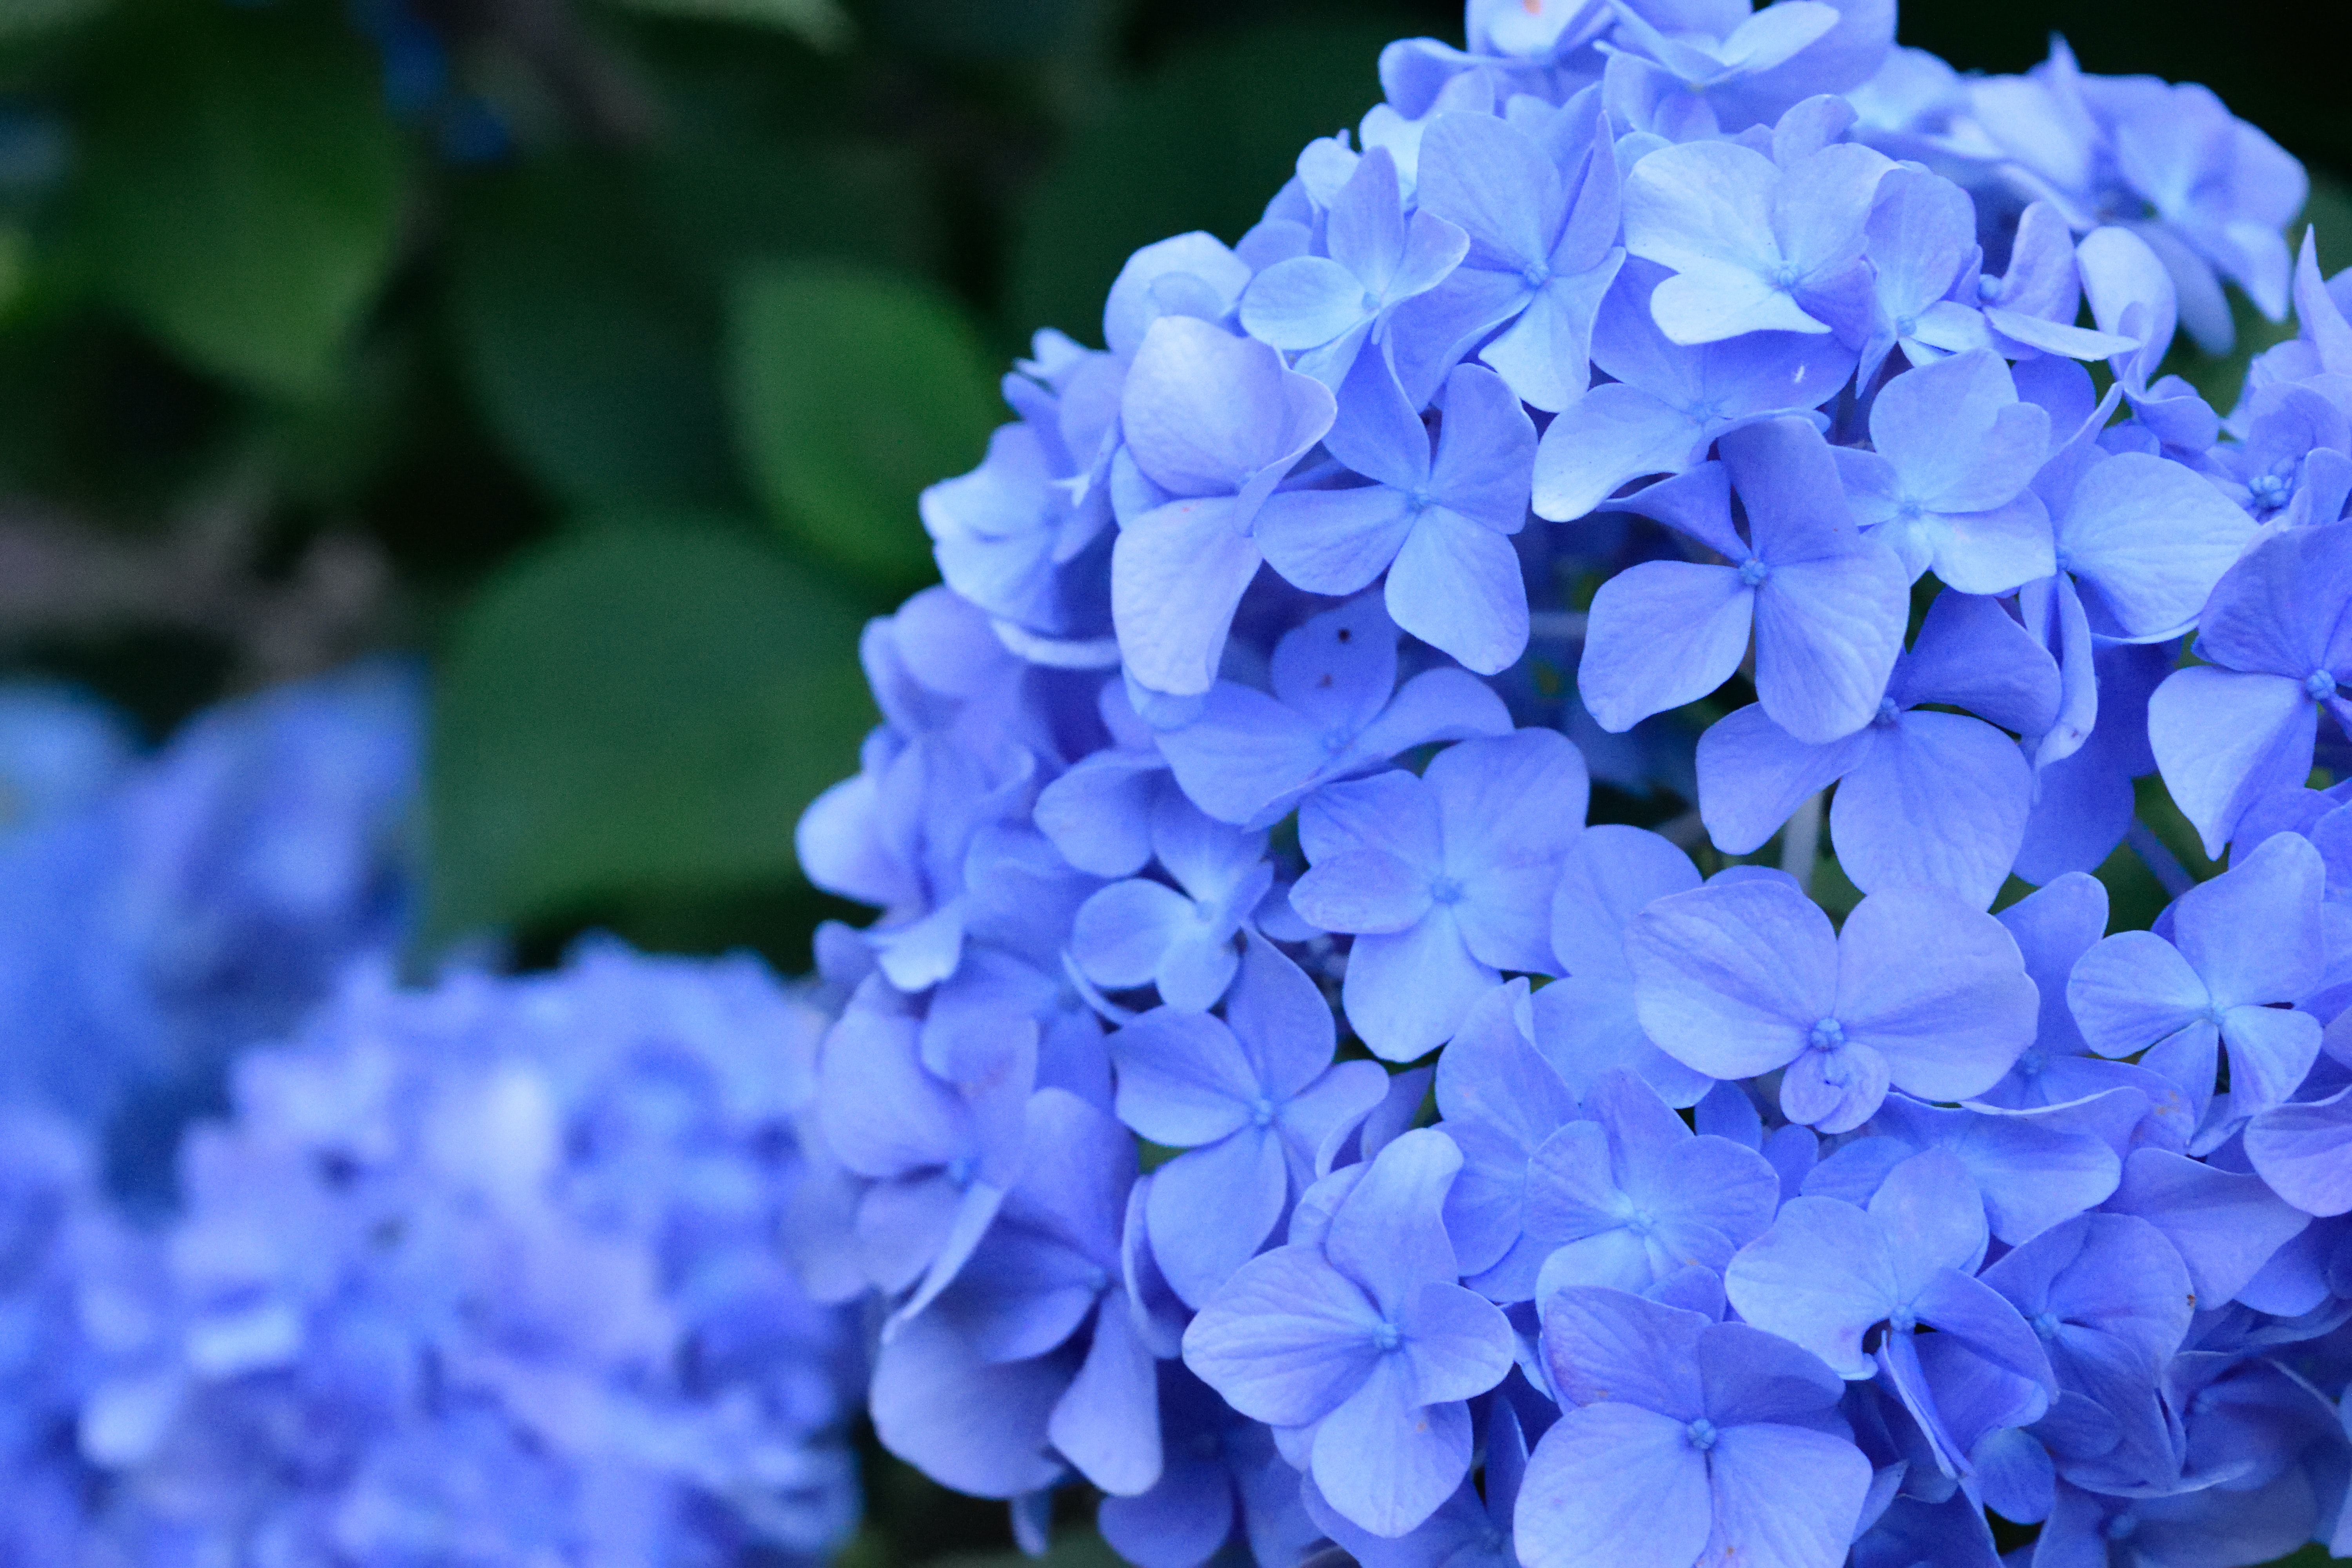 close-up photo of blue flower